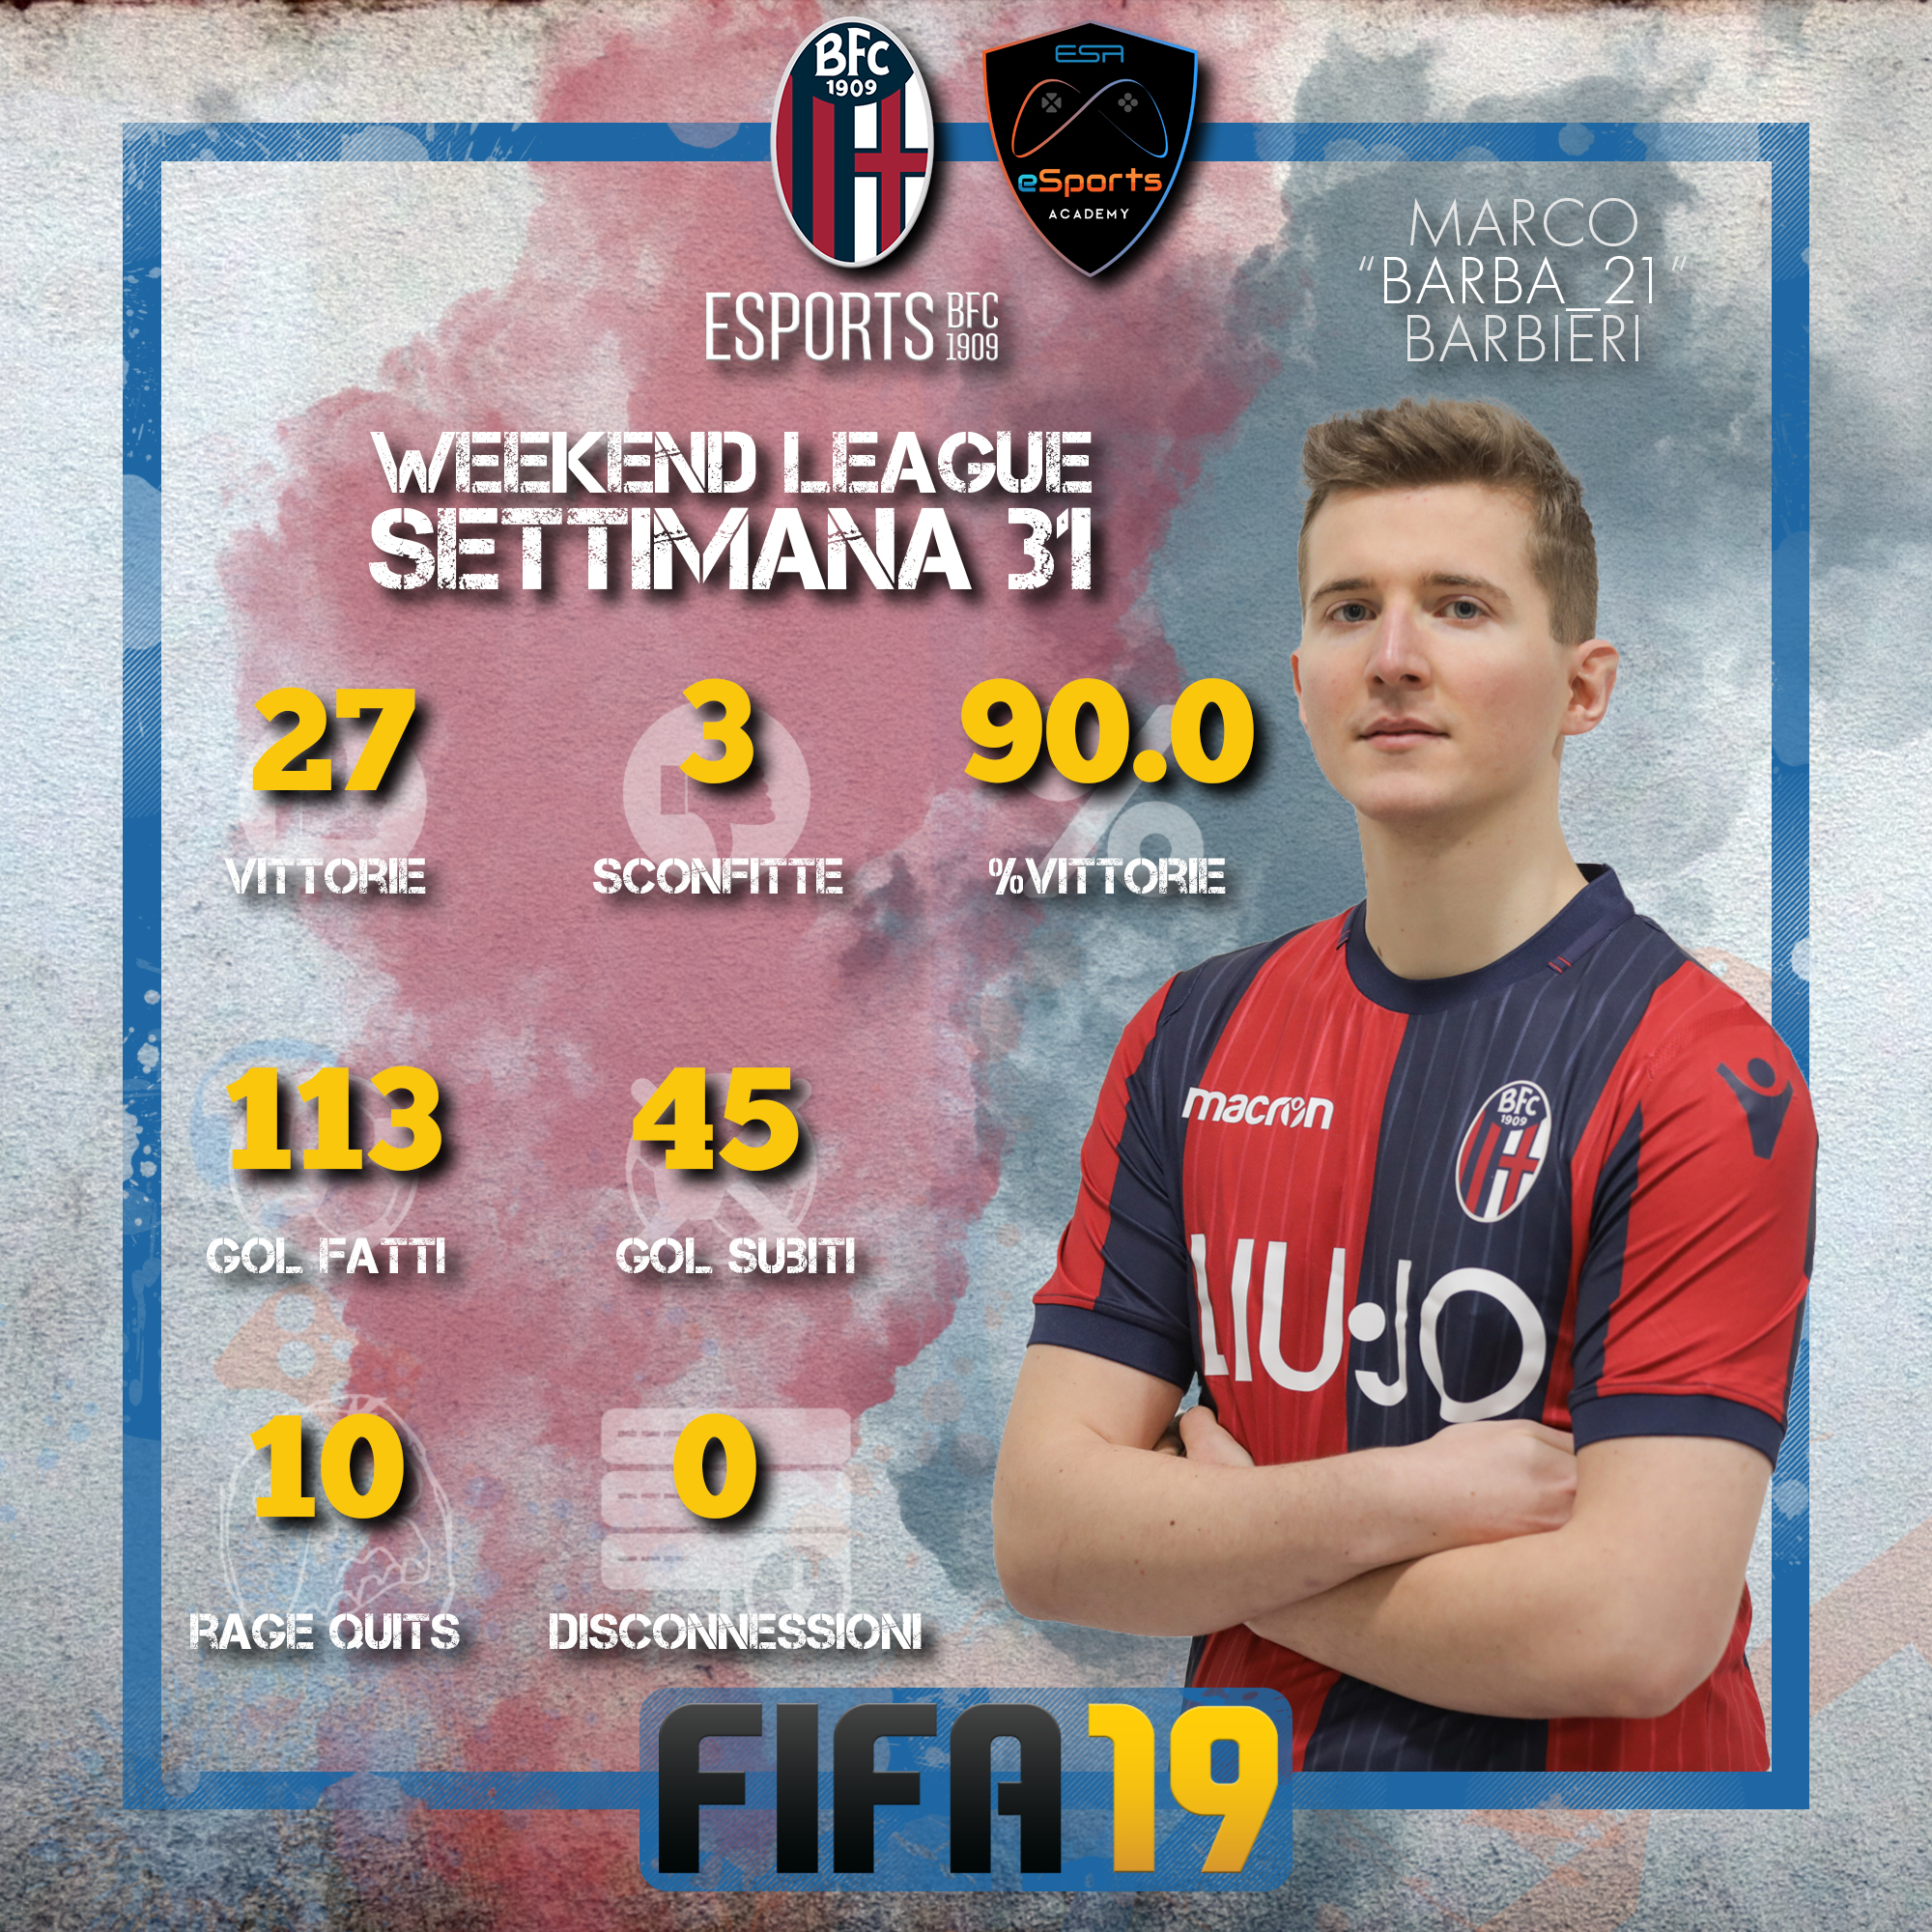 Fifa19_Weekend League_Week31_Barba_21.jpg